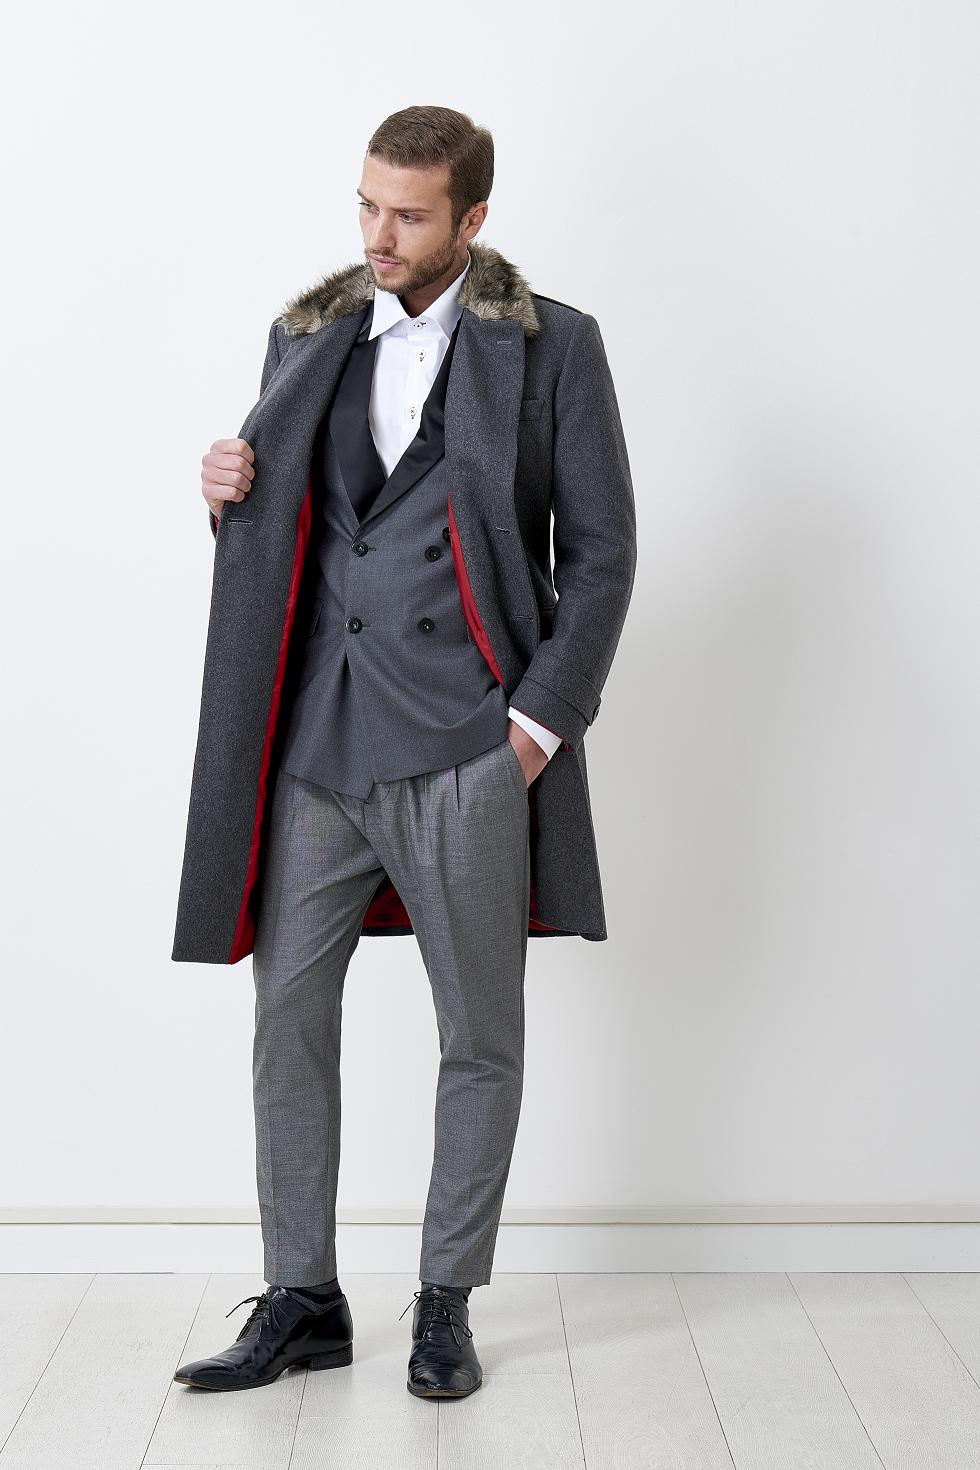 Dickson Style Milano: fashion dandy tailoring Made in ...